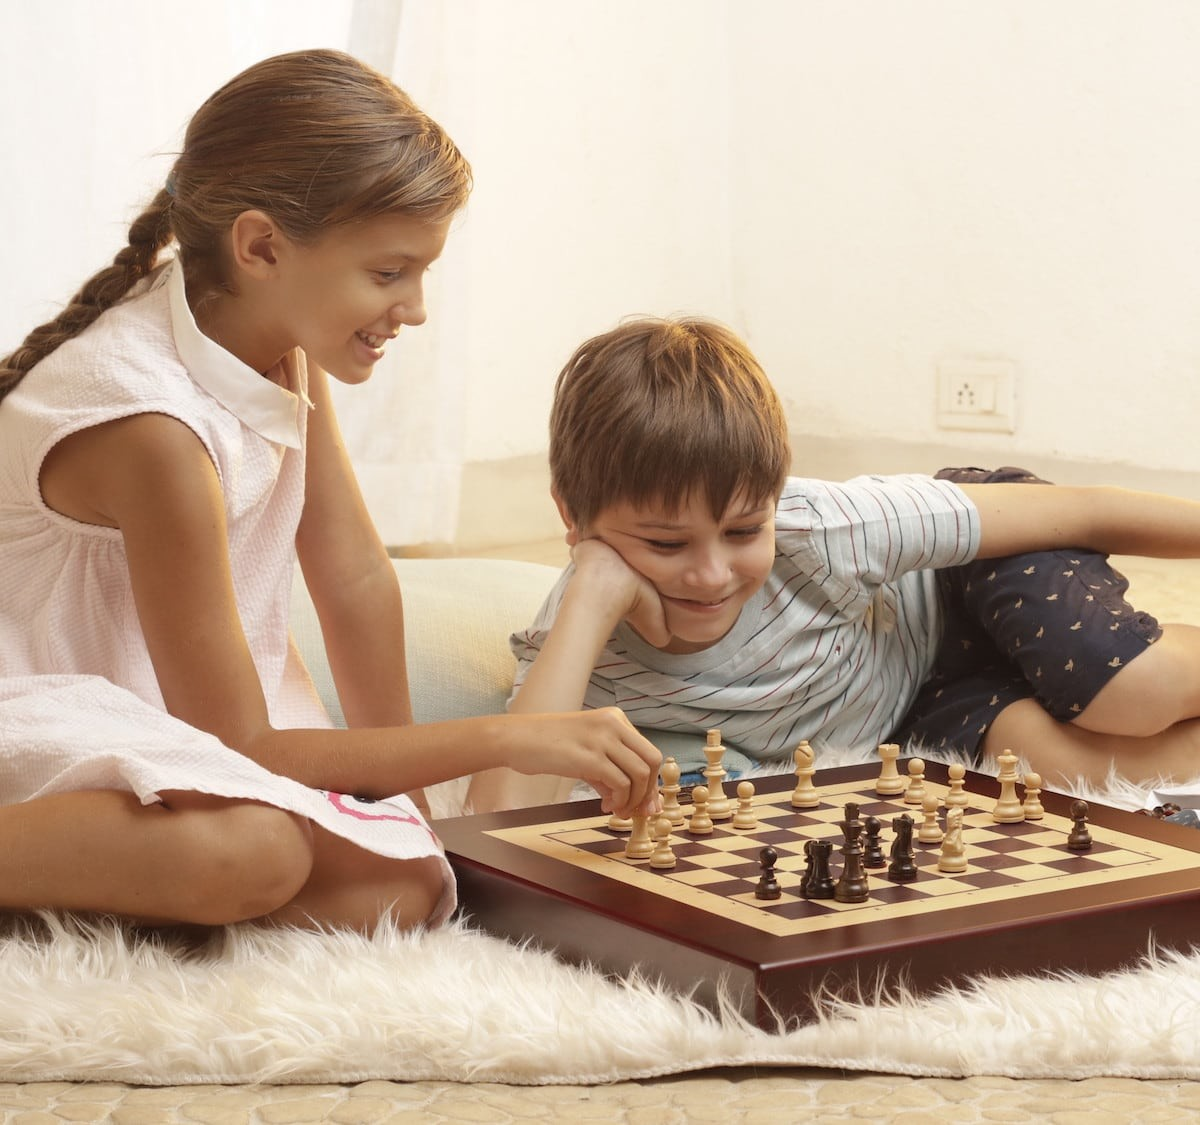 Square Off Kingdom Set wooden chessboard uses artificial intelligence for smarter play